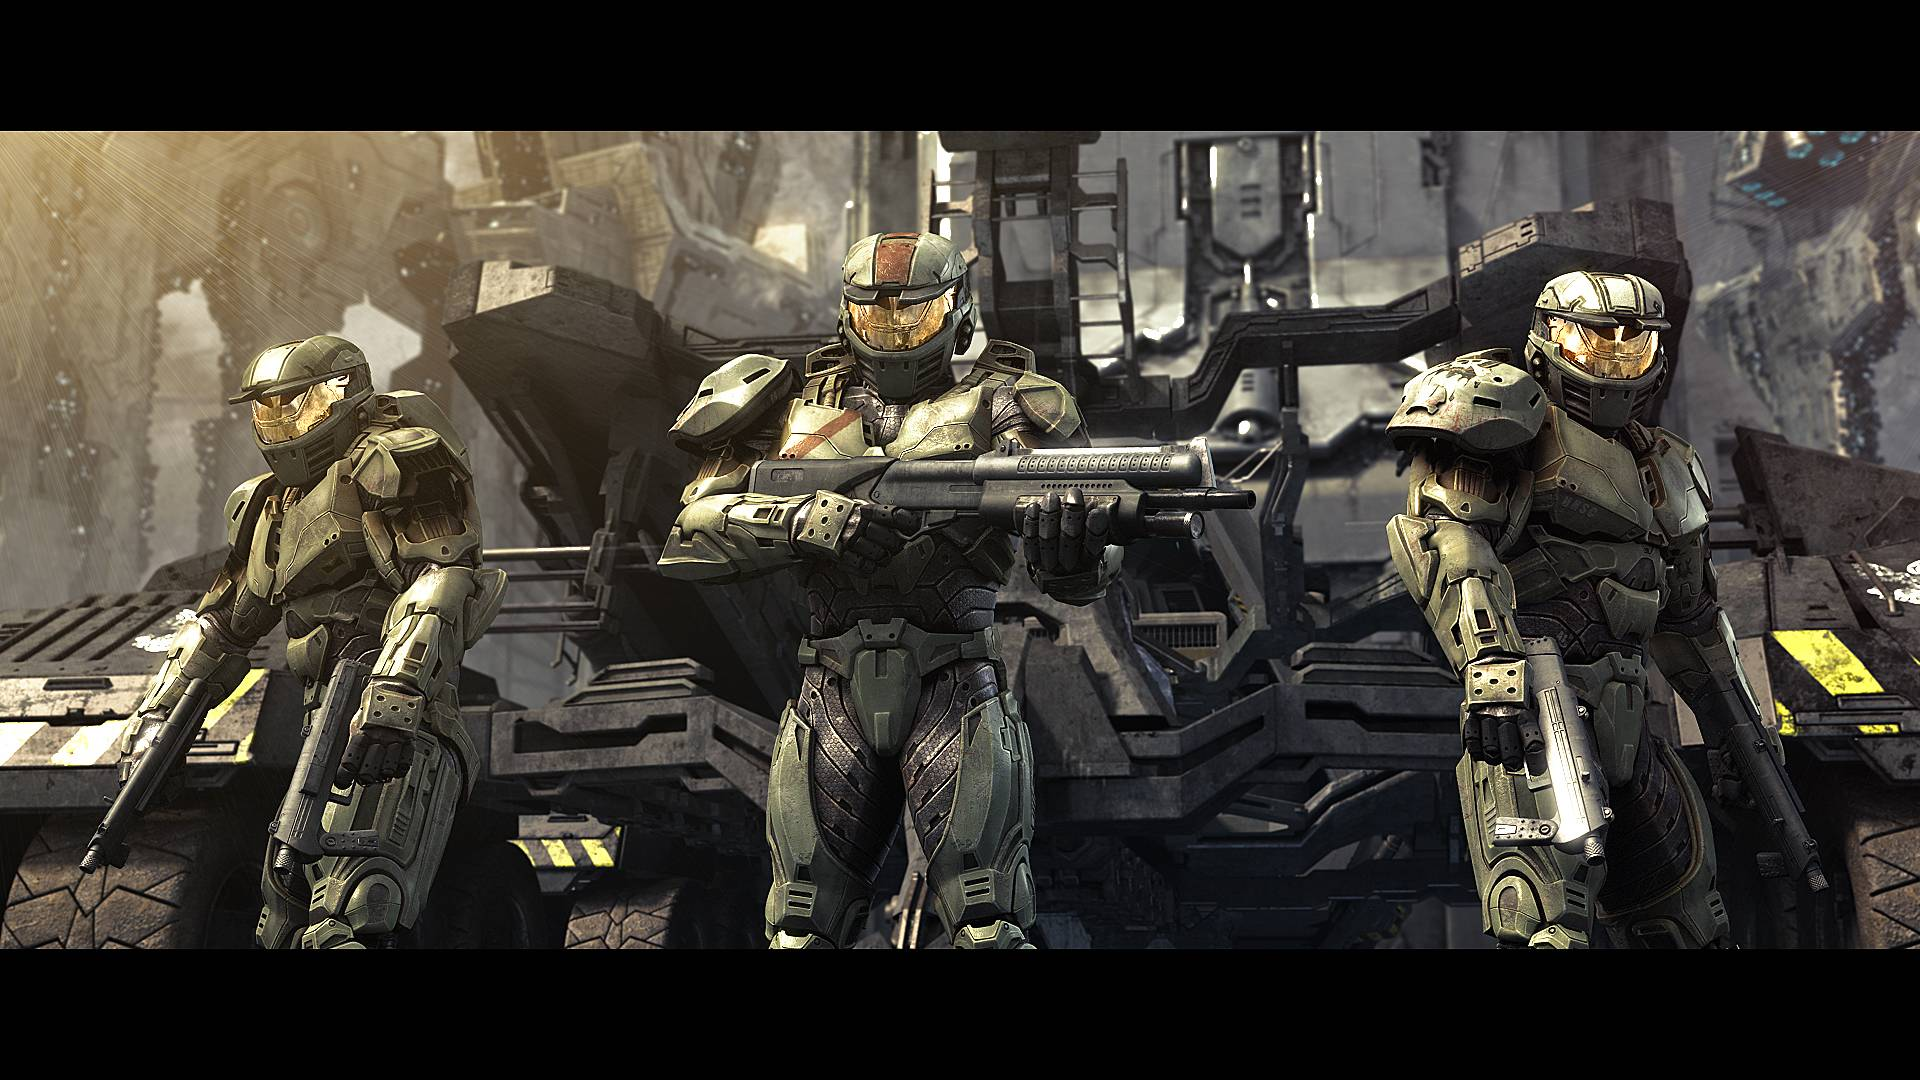 halo wars battles wallpaper - photo #12